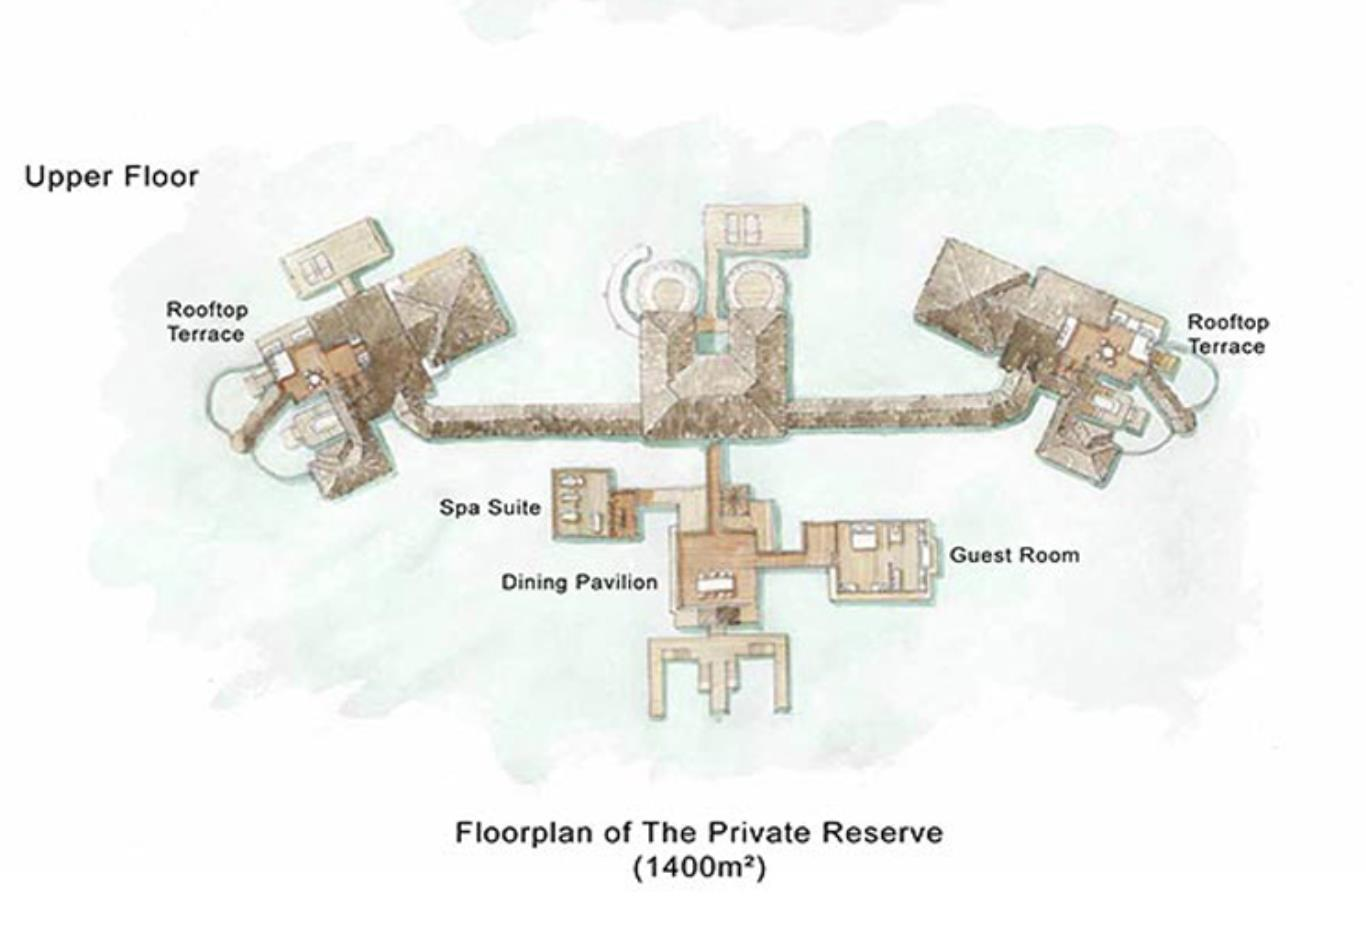 Floorplan The Private Reserve Lower